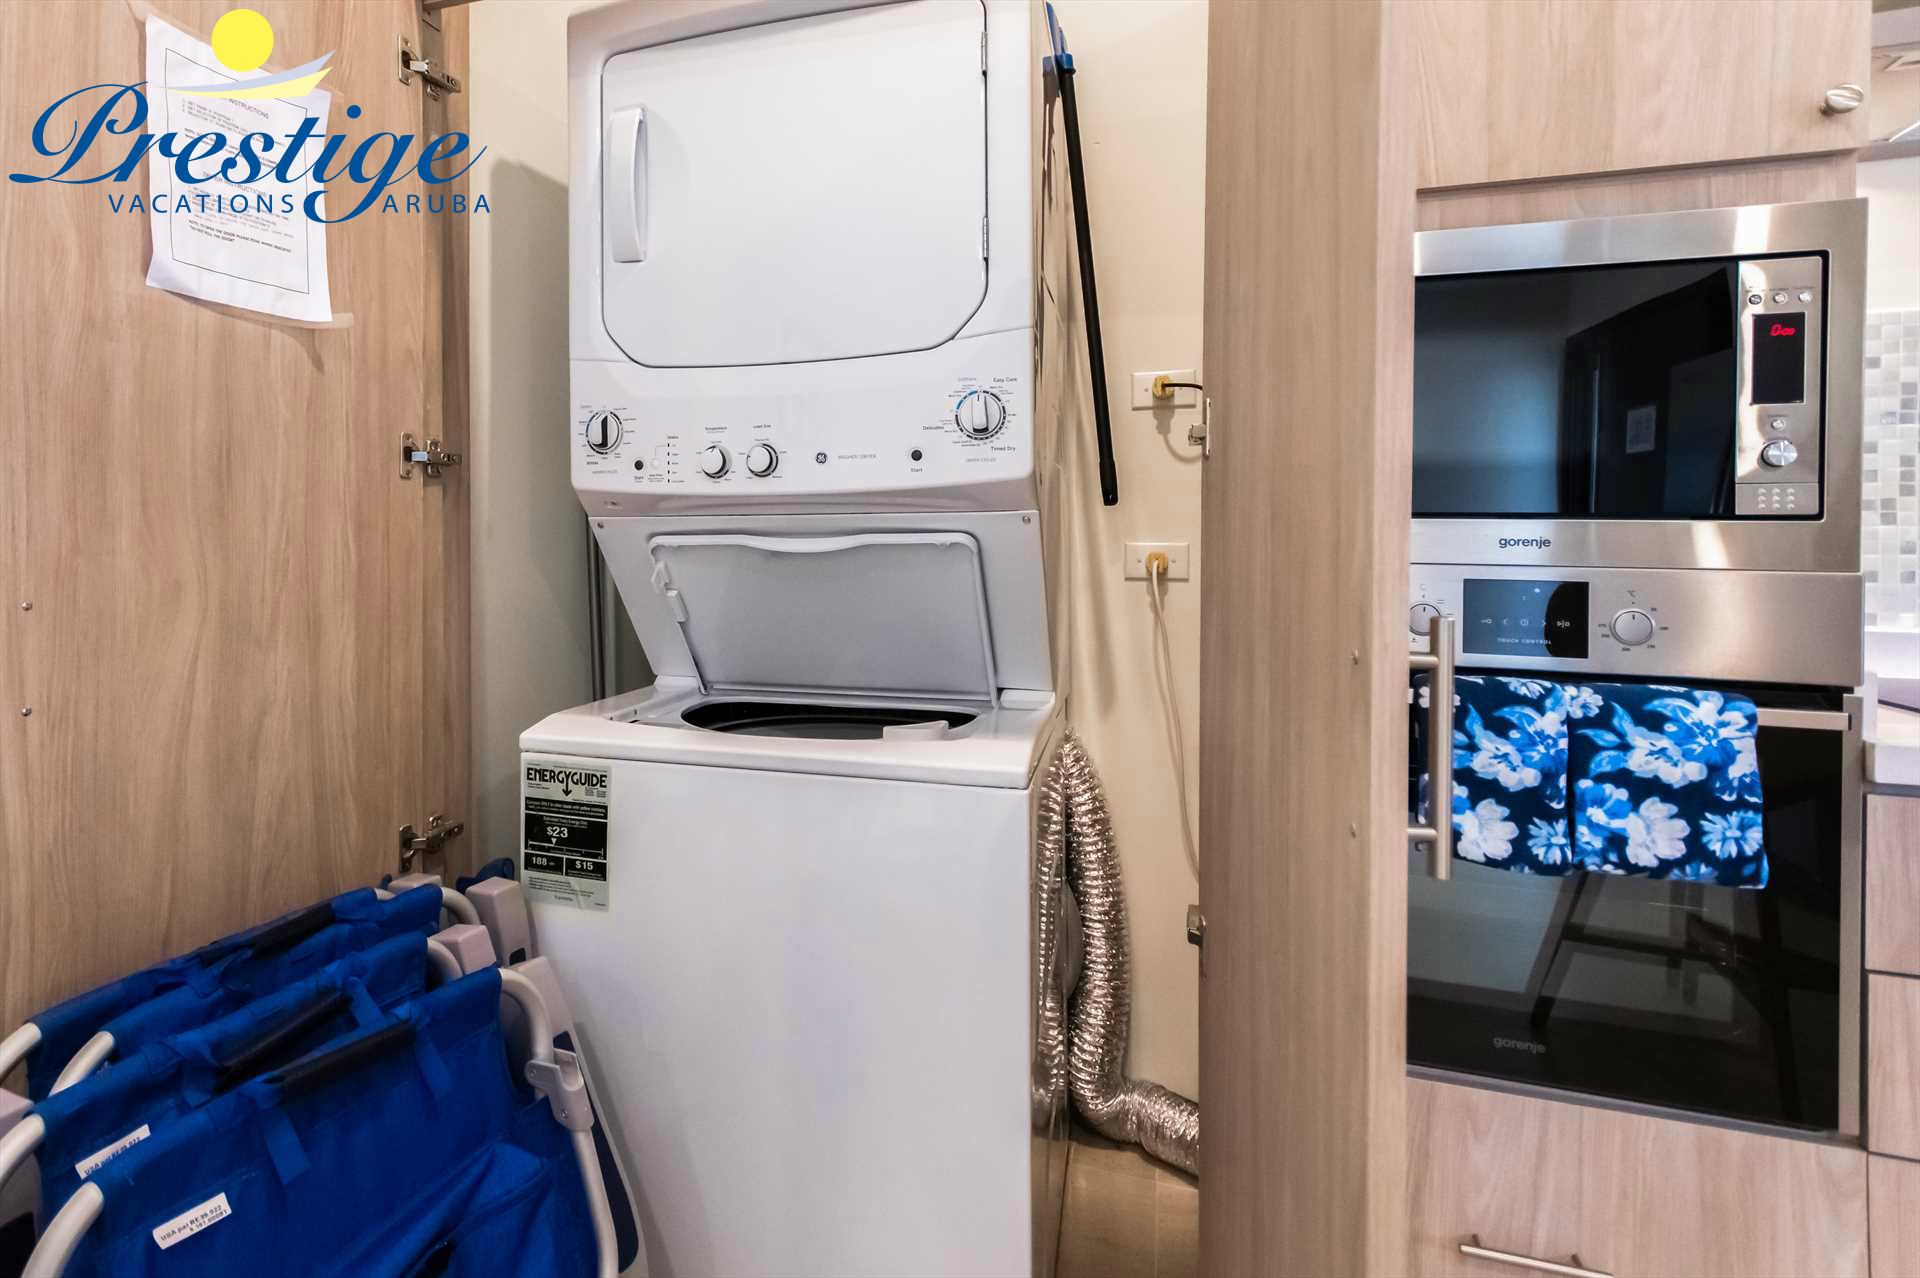 In-room washer/dryer and beach chairs are all available for your comfort